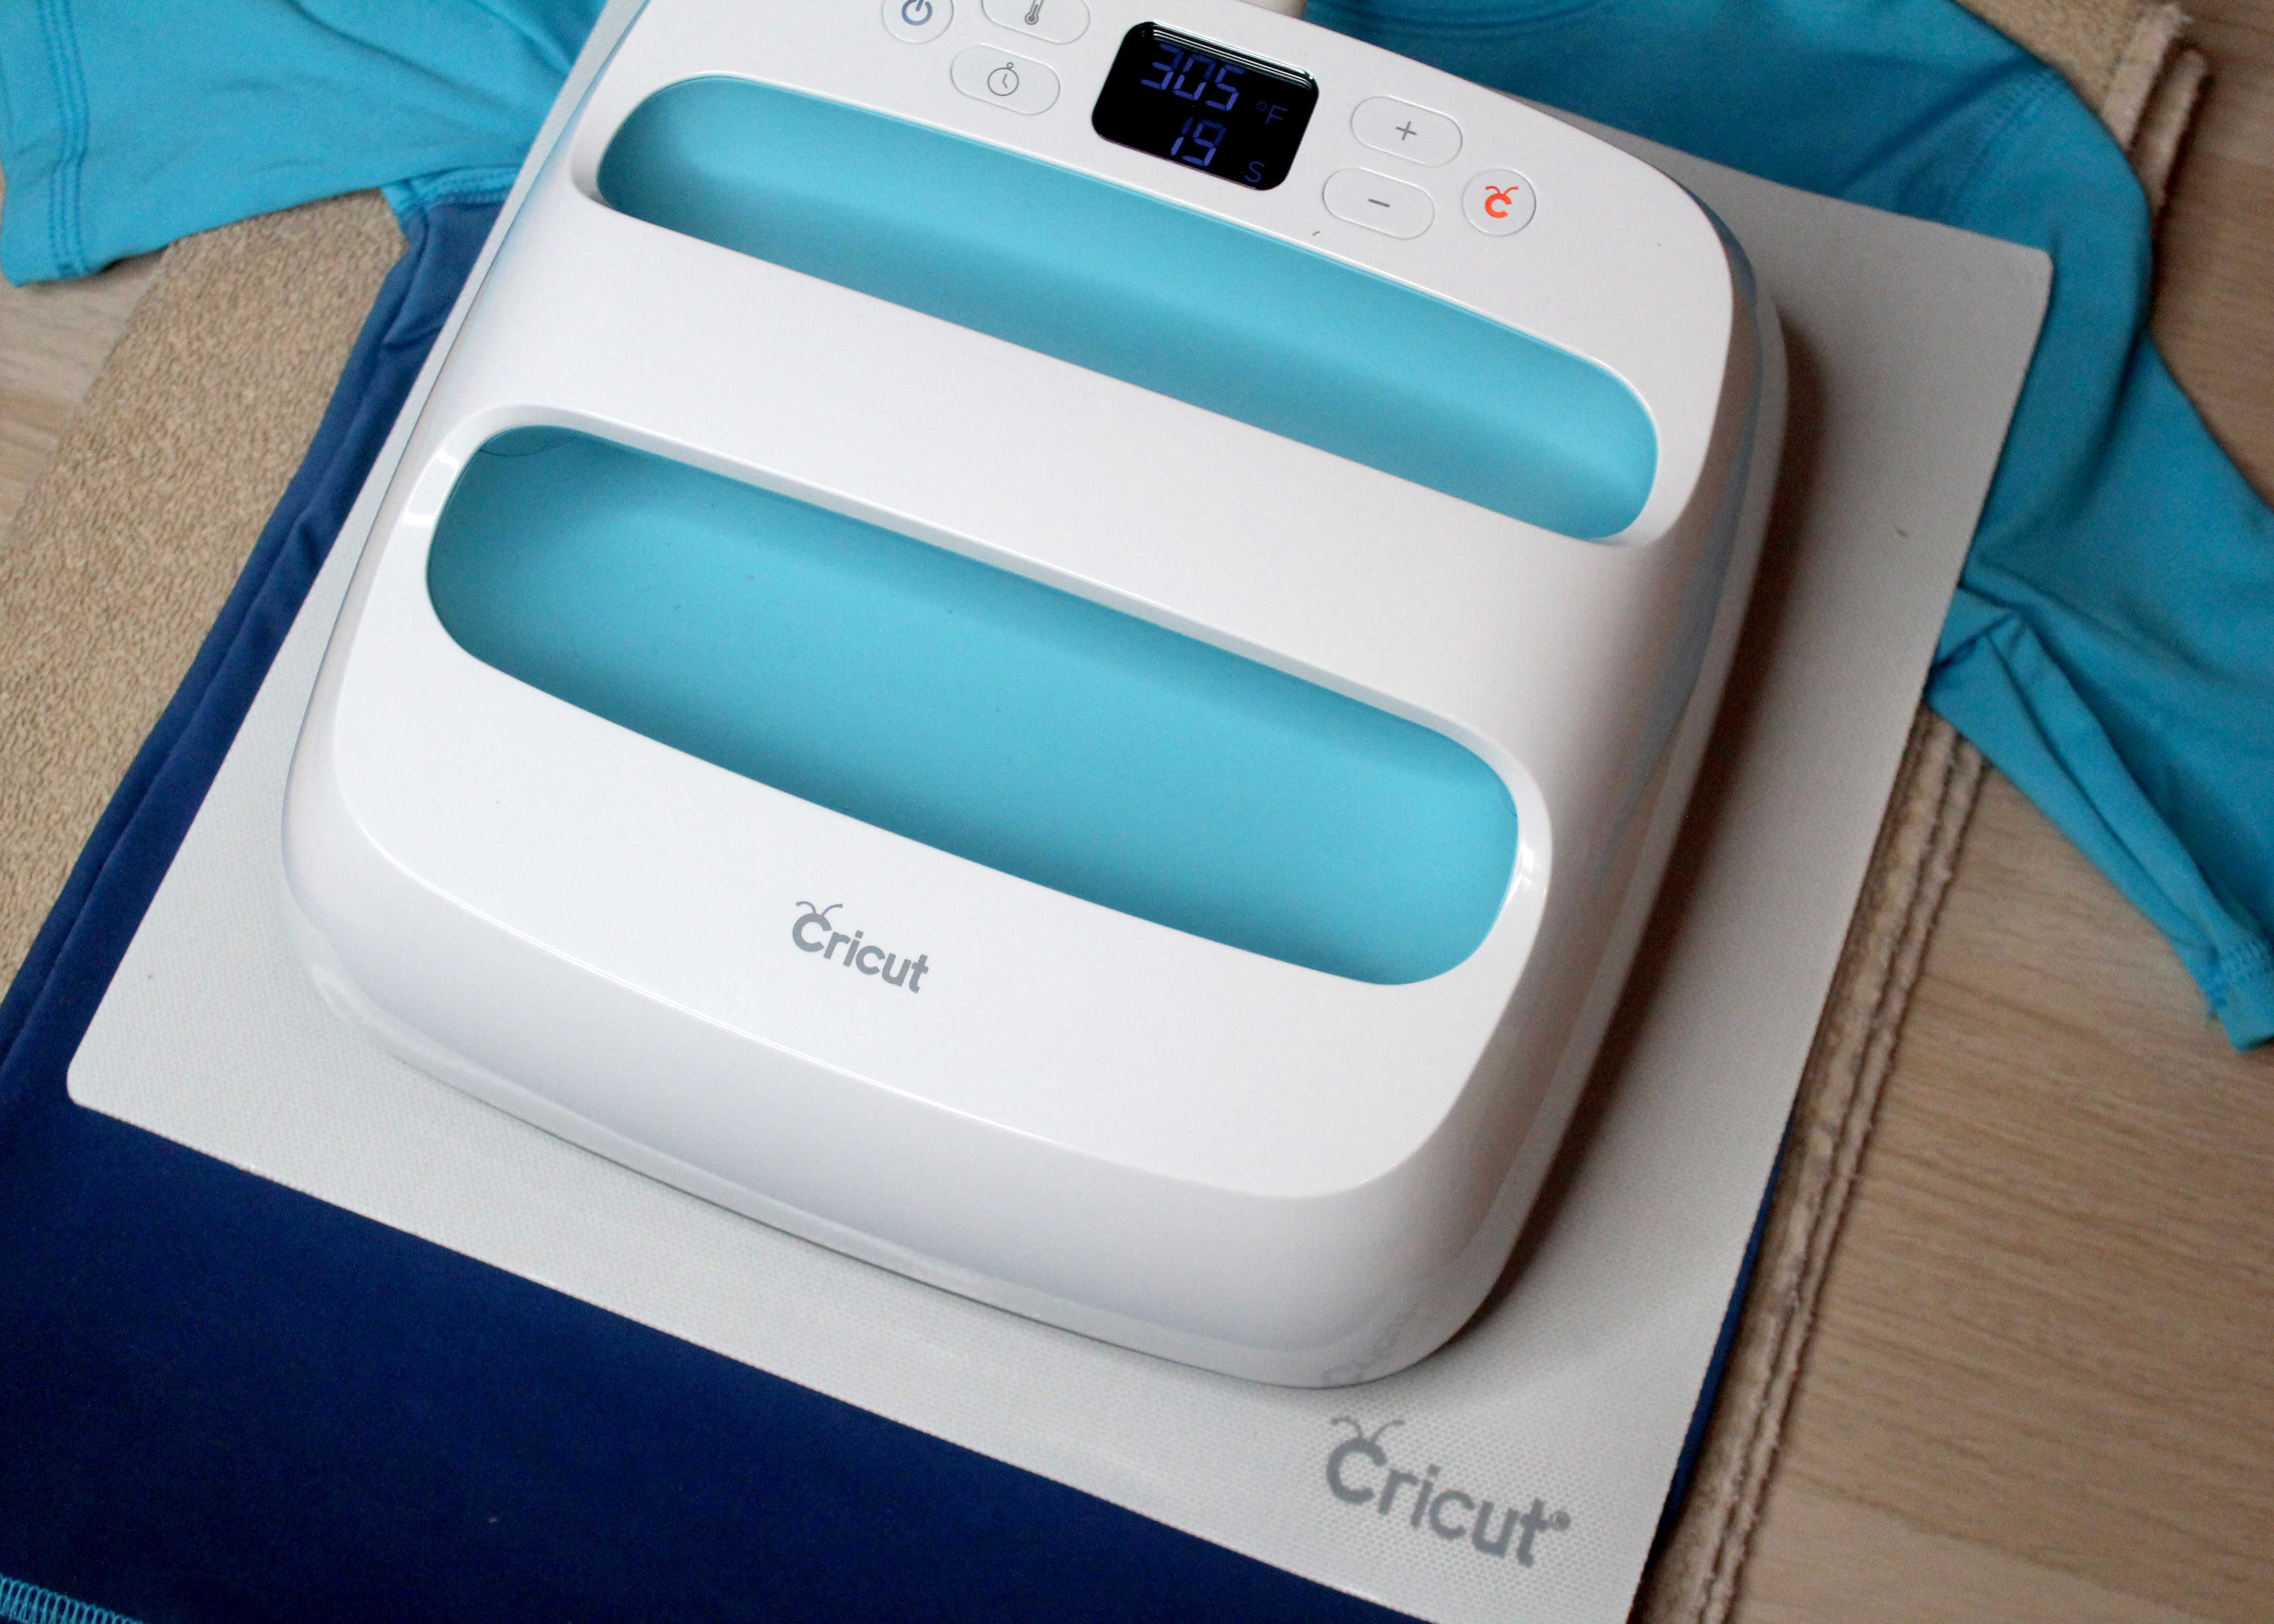 Give those rash guards a personal touch with Cricut's new Sportflex Iron-On. Get all the details and project link at sugarcoatedhousewife.com